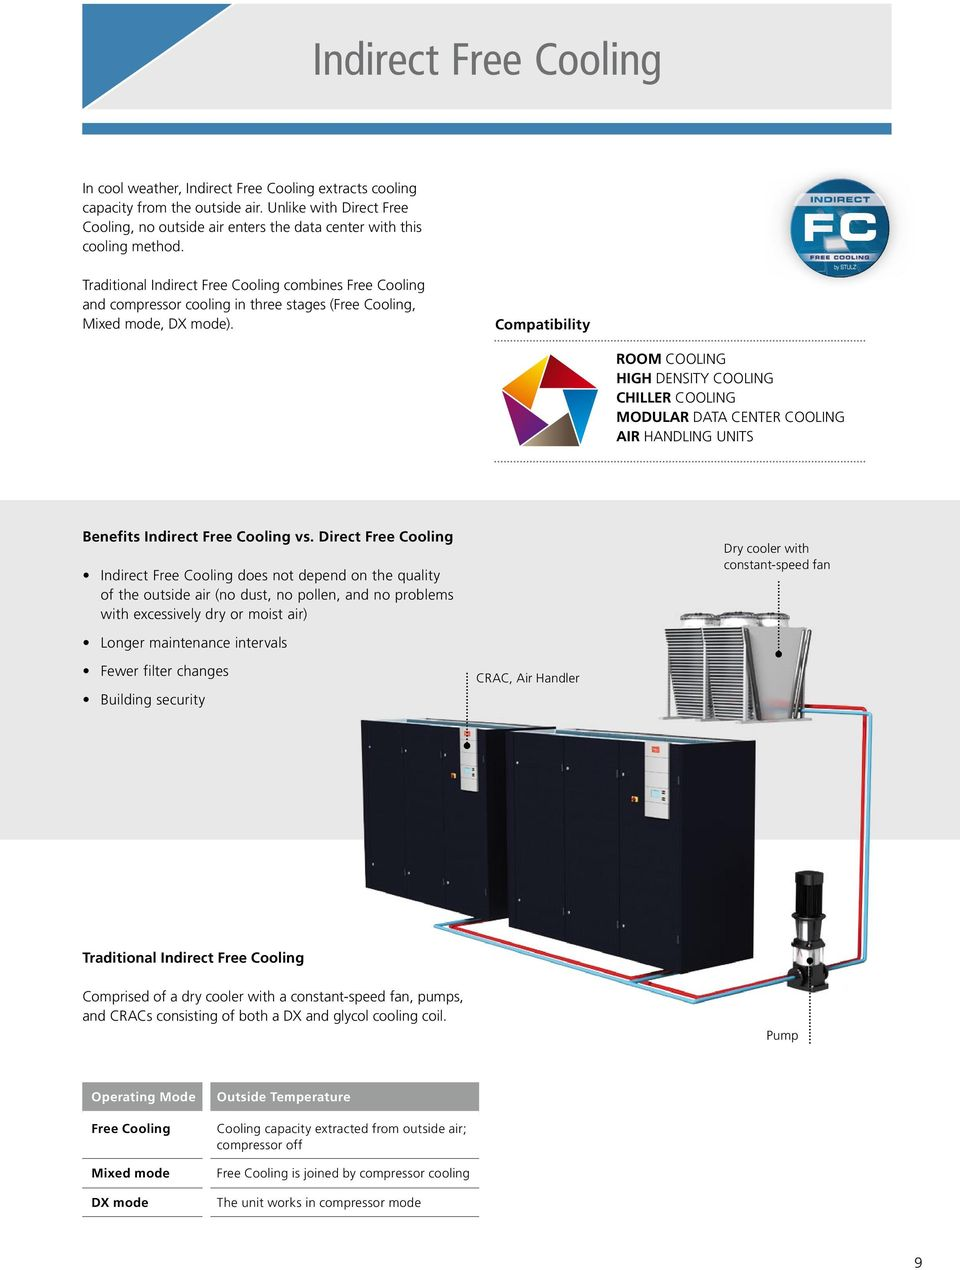 Traditional Indirect Free Cooling combines Free Cooling and compressor cooling in three stages (Free Cooling, Mixed mode, DX mode).